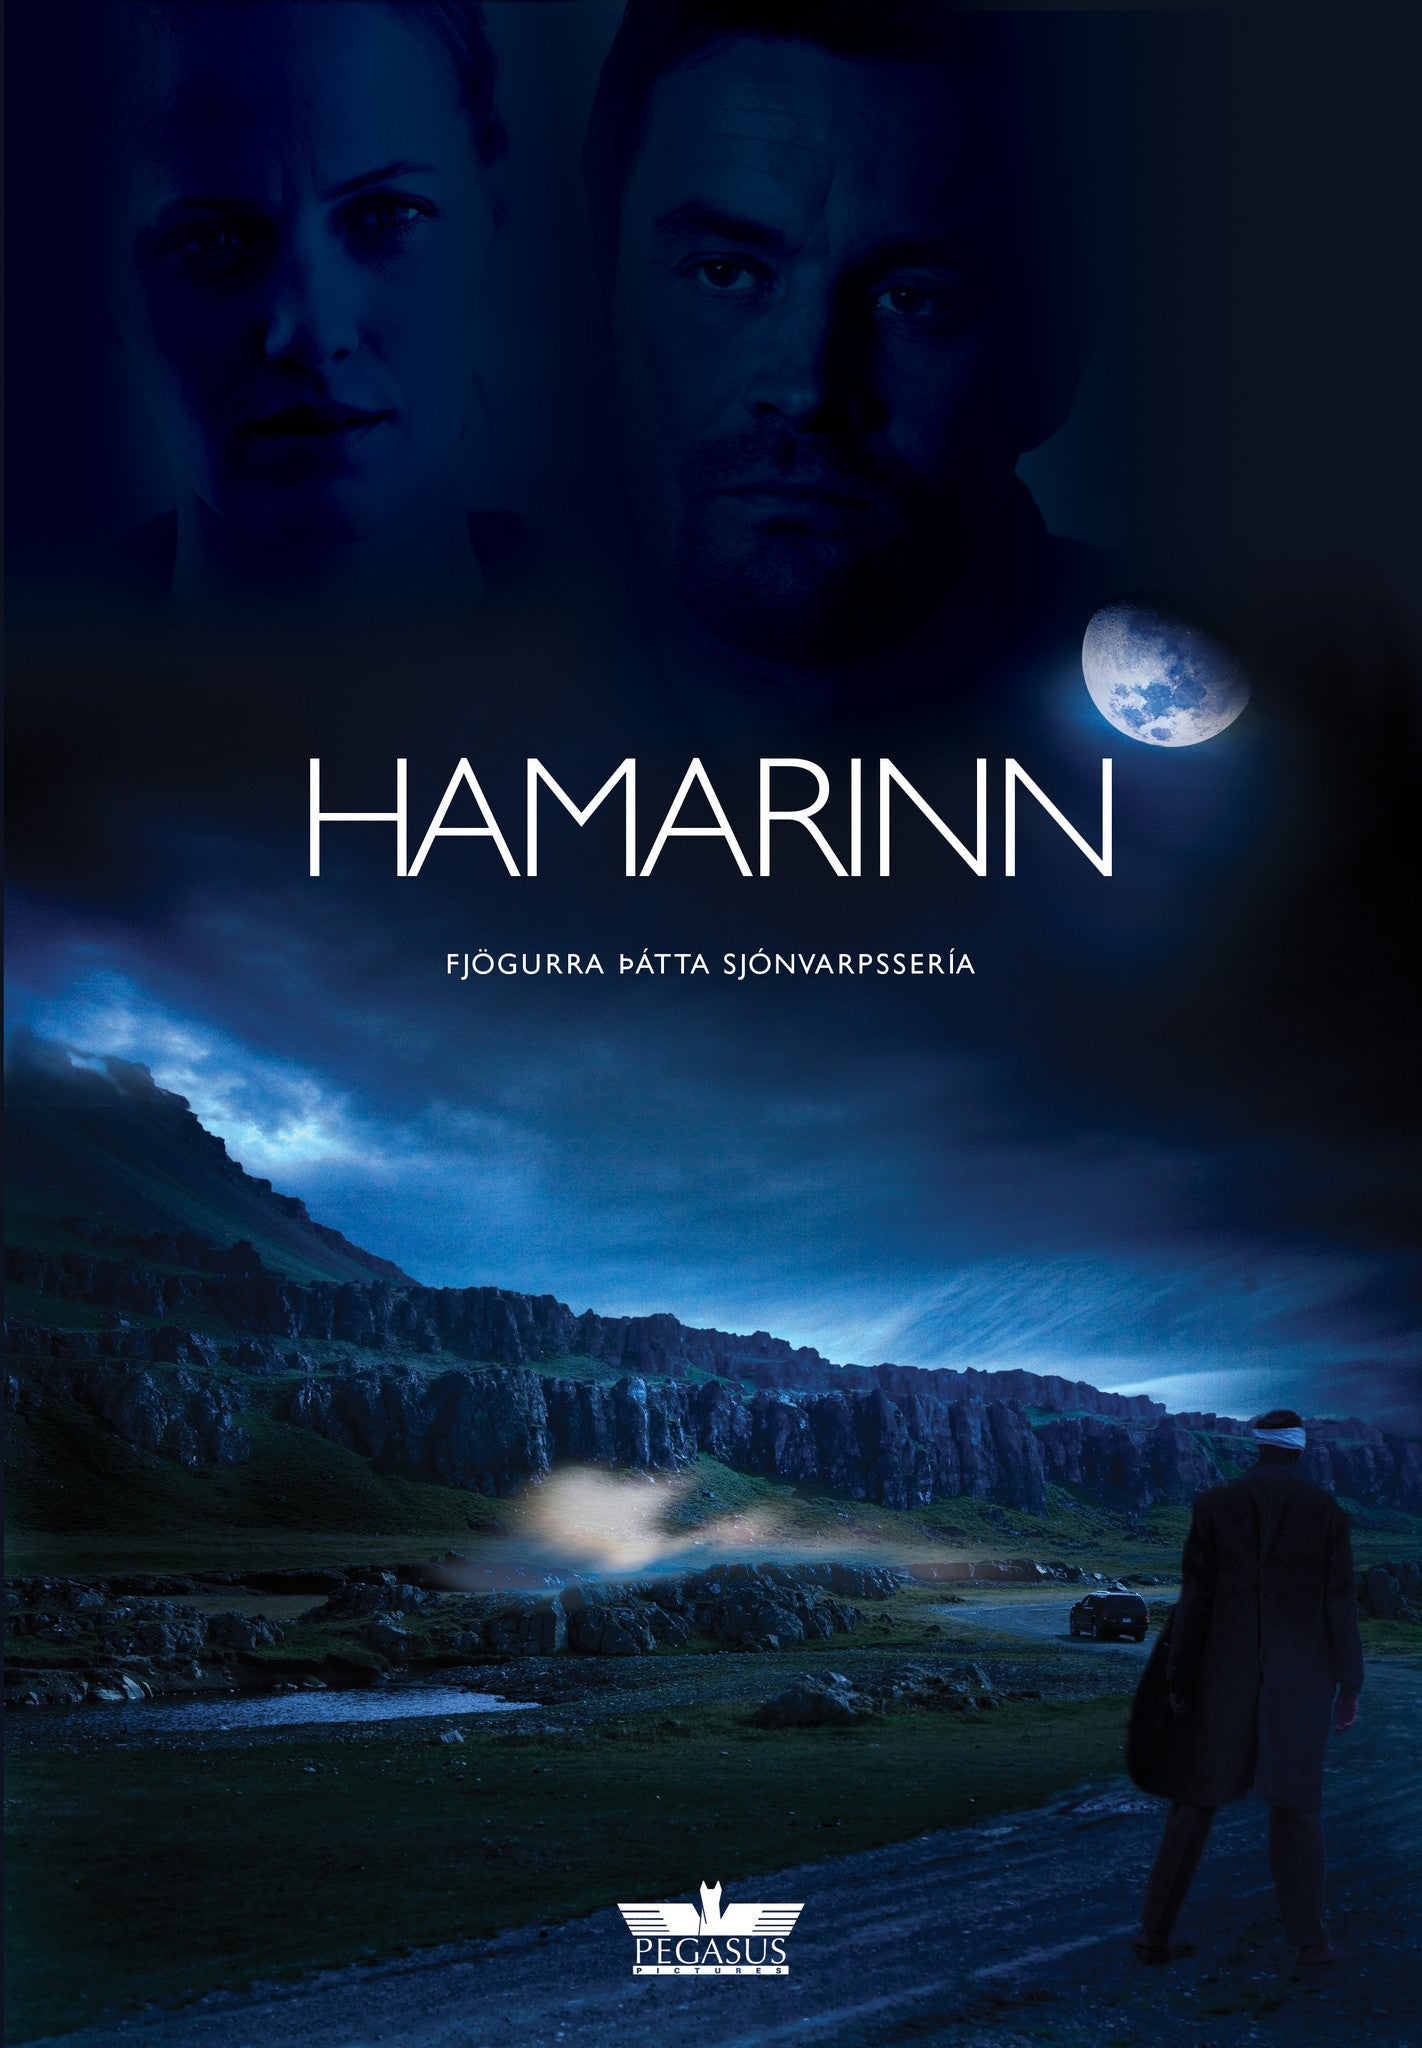 - Icelandic Hamarinn - The Cliff (DVD) - DVD - Nordic Store Icelandic Wool Sweaters